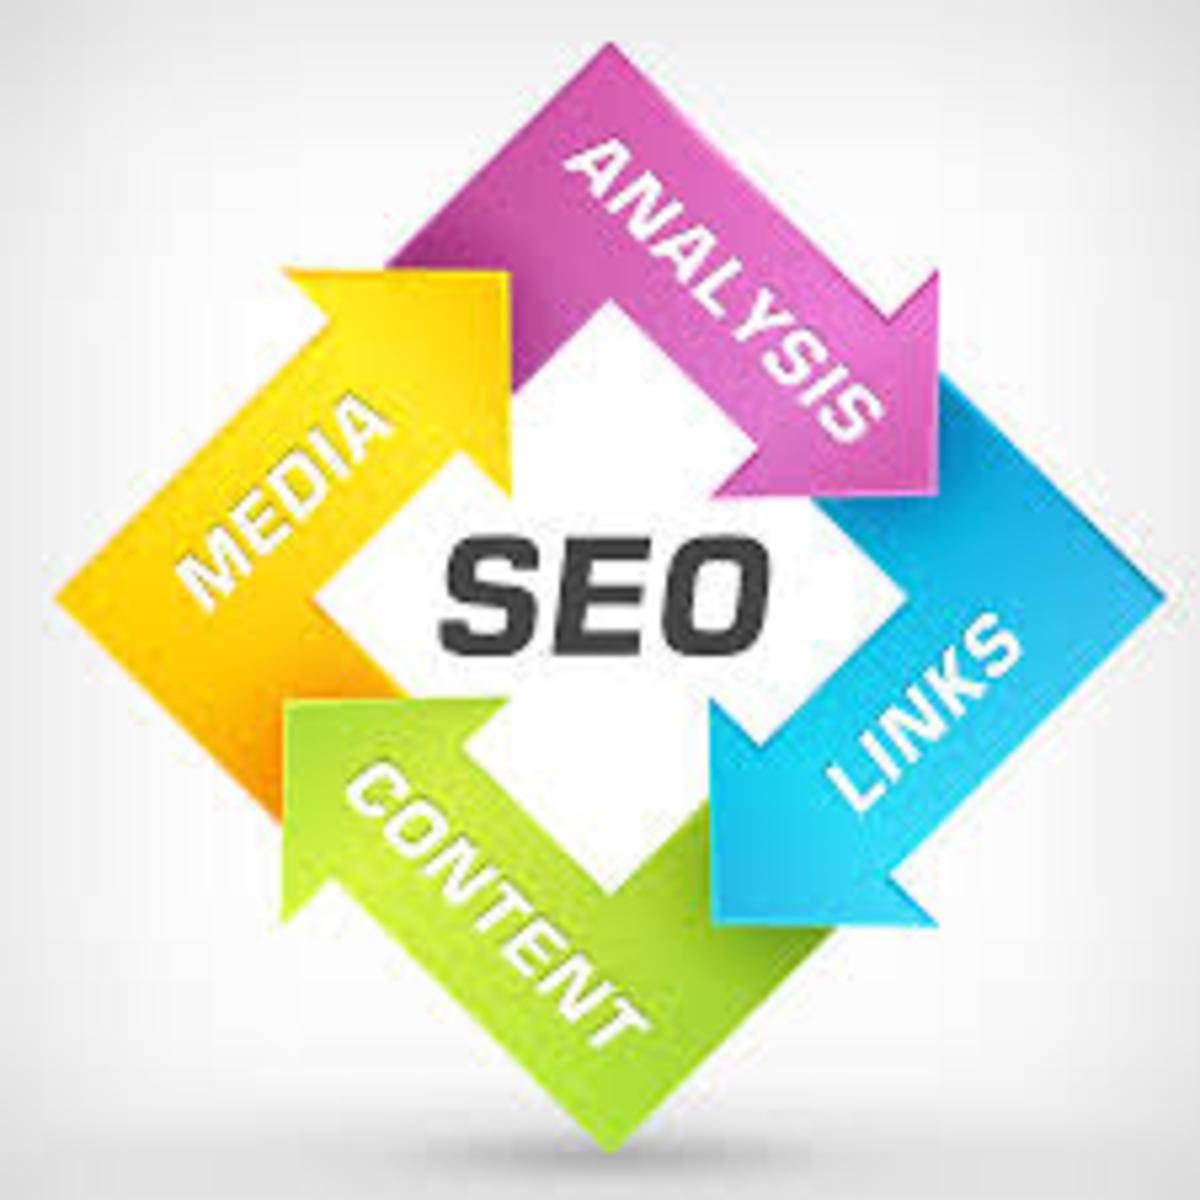 Search Engine Optimization - What You Need to Know